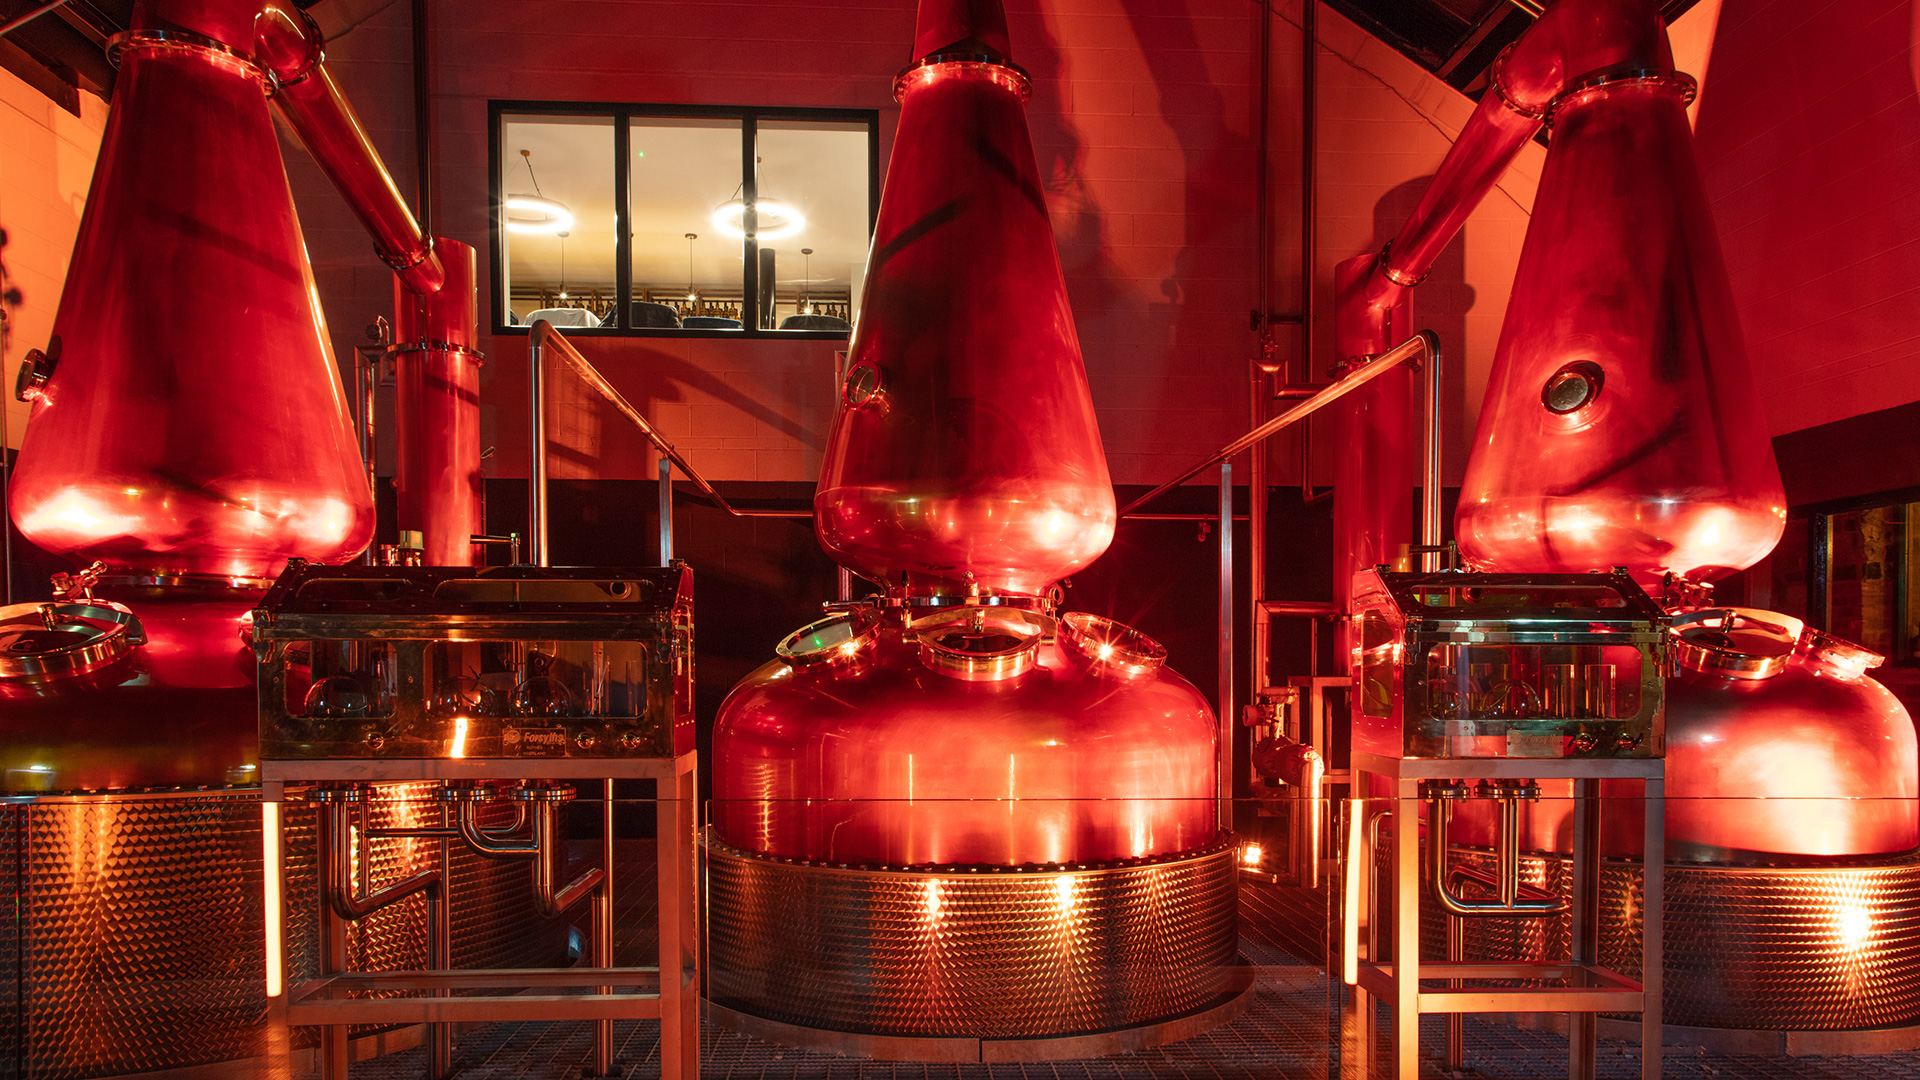 Dublin Liberties Distillery